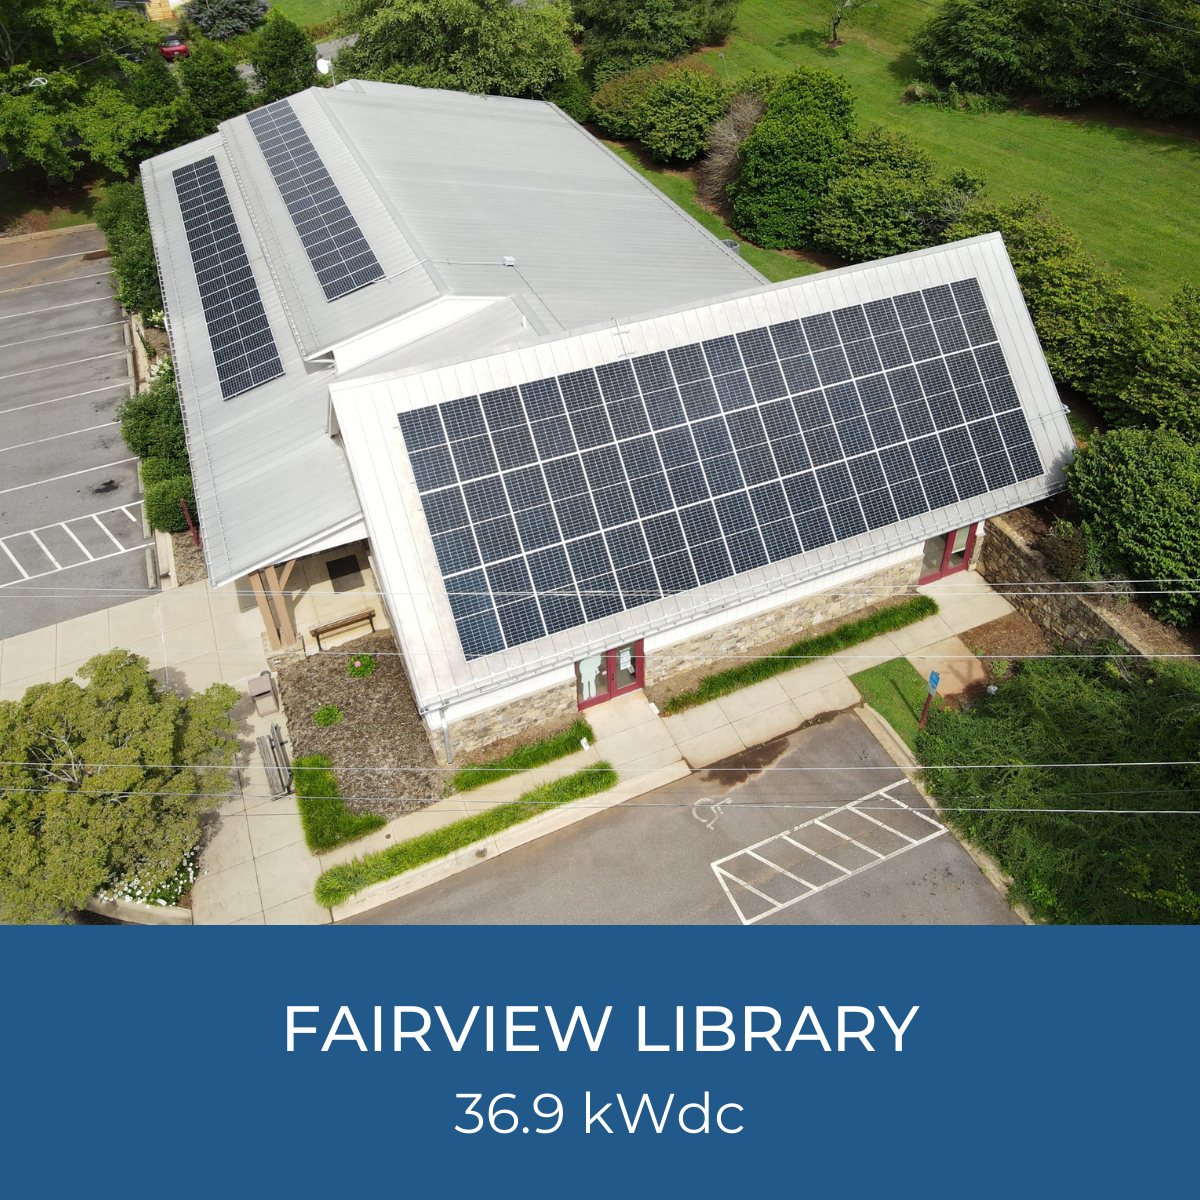 Image of Fairview Library Solar Project, 36.9kWdc system